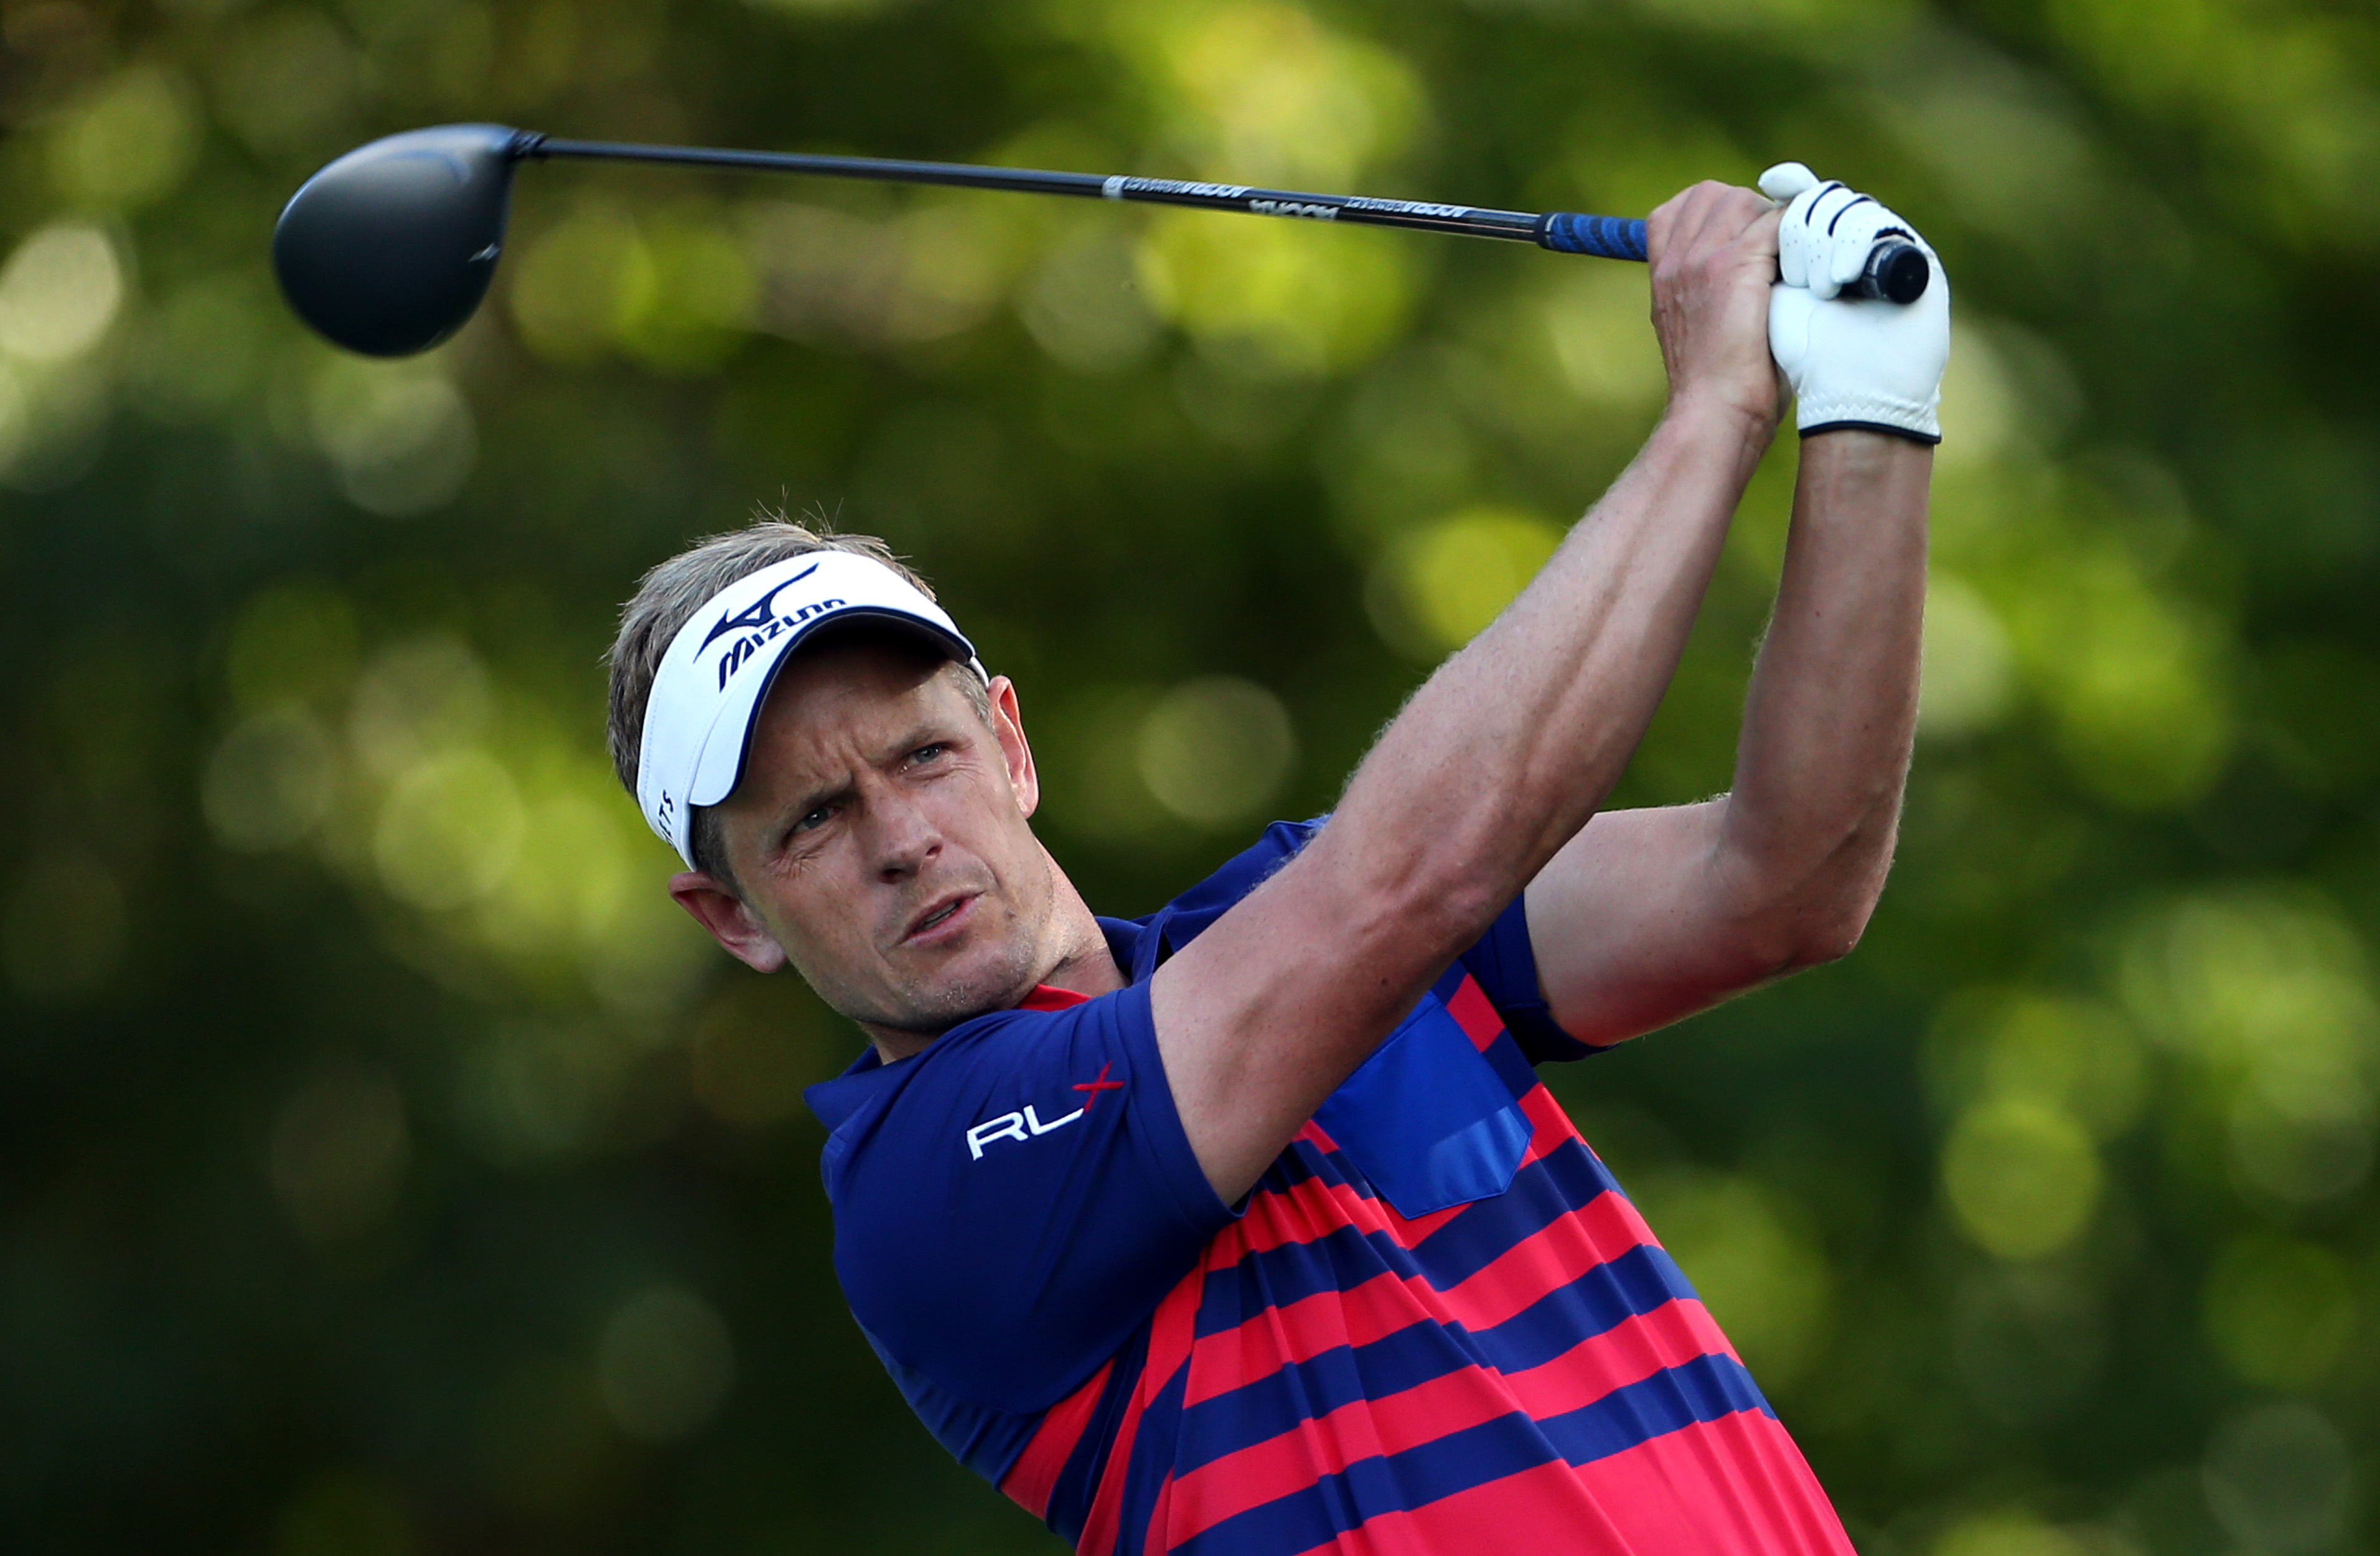 Luke Donald hasn't finished in the top 25 of any event this season after a disappointing 2015 campaign.